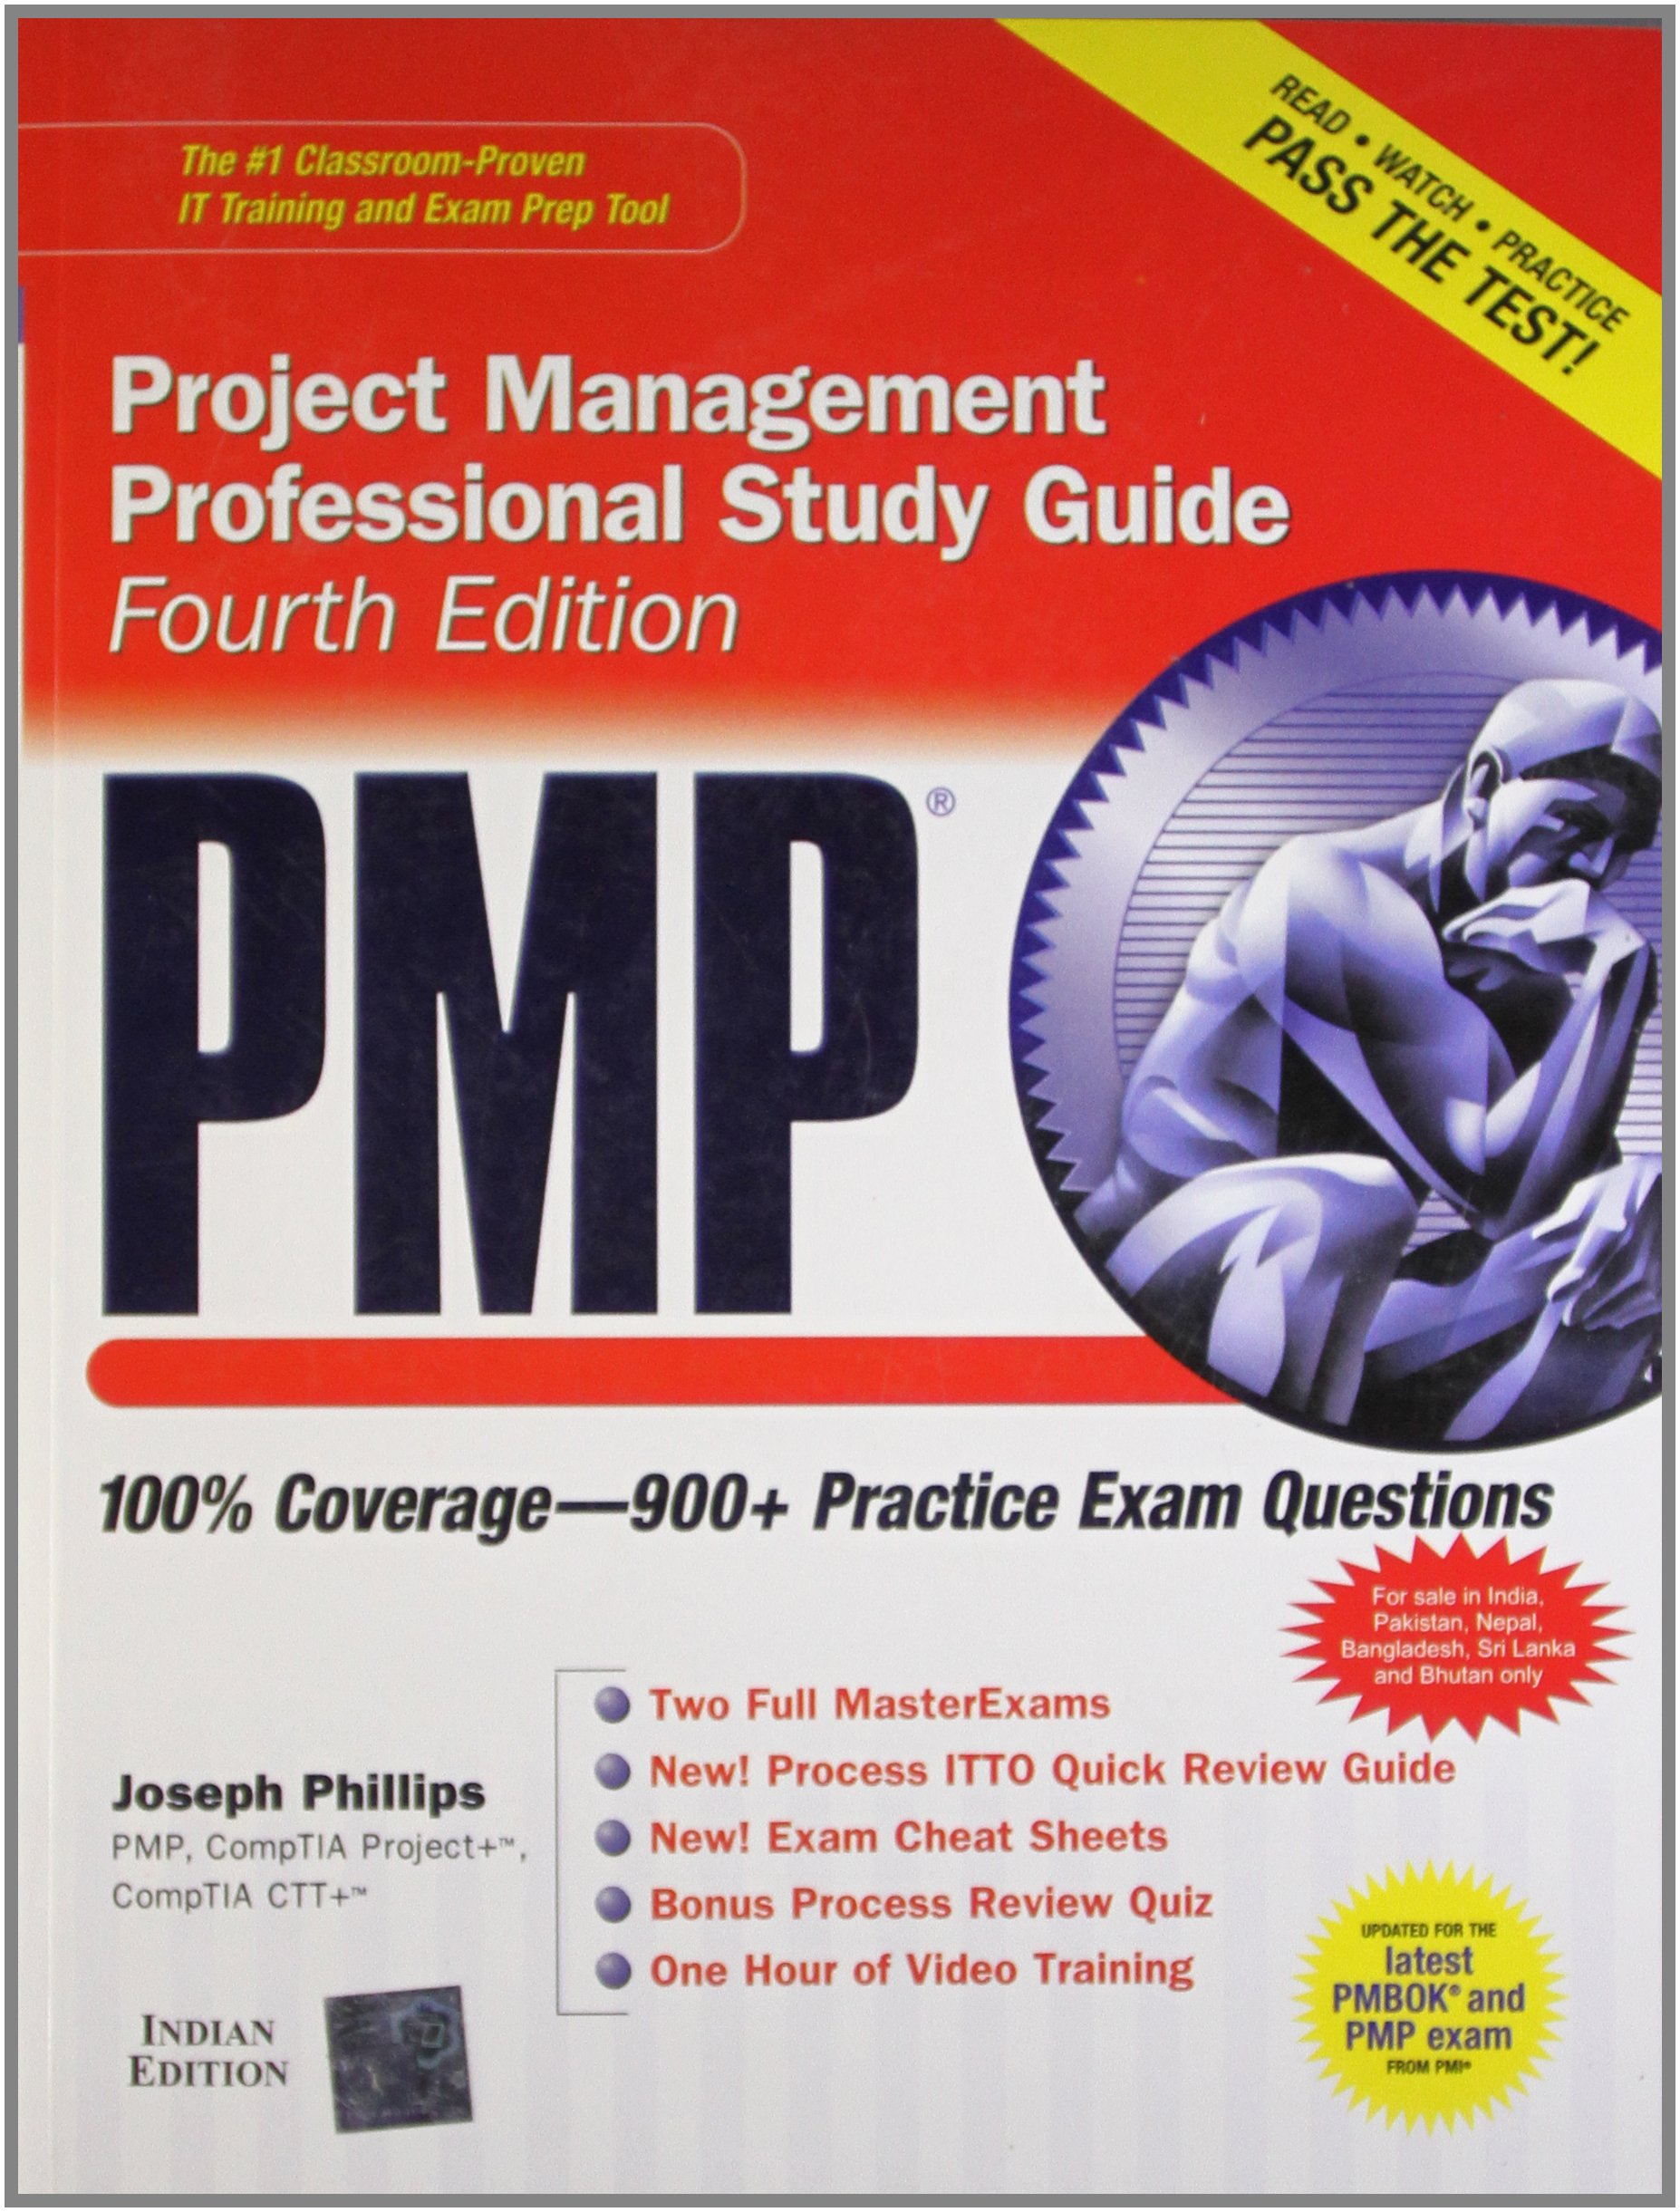 Buy pmp project management professional study guide book online at buy pmp project management professional study guide book online at low prices in india pmp project management professional study guide reviews ratings 1betcityfo Images